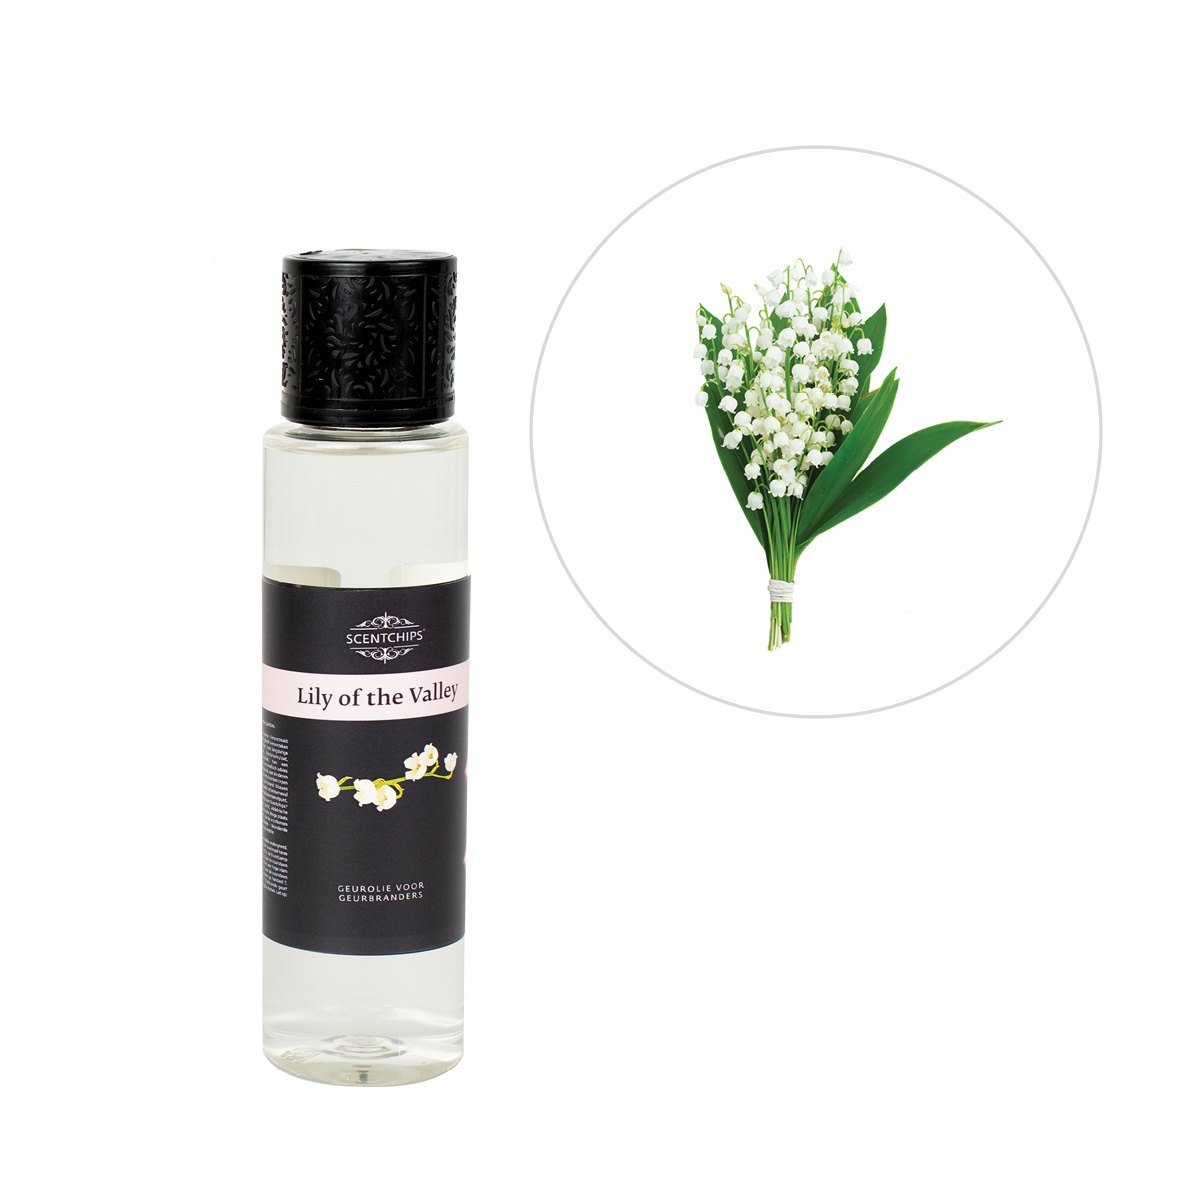 Scentchips® Lily-of-the-valley fragrance oil ScentOil